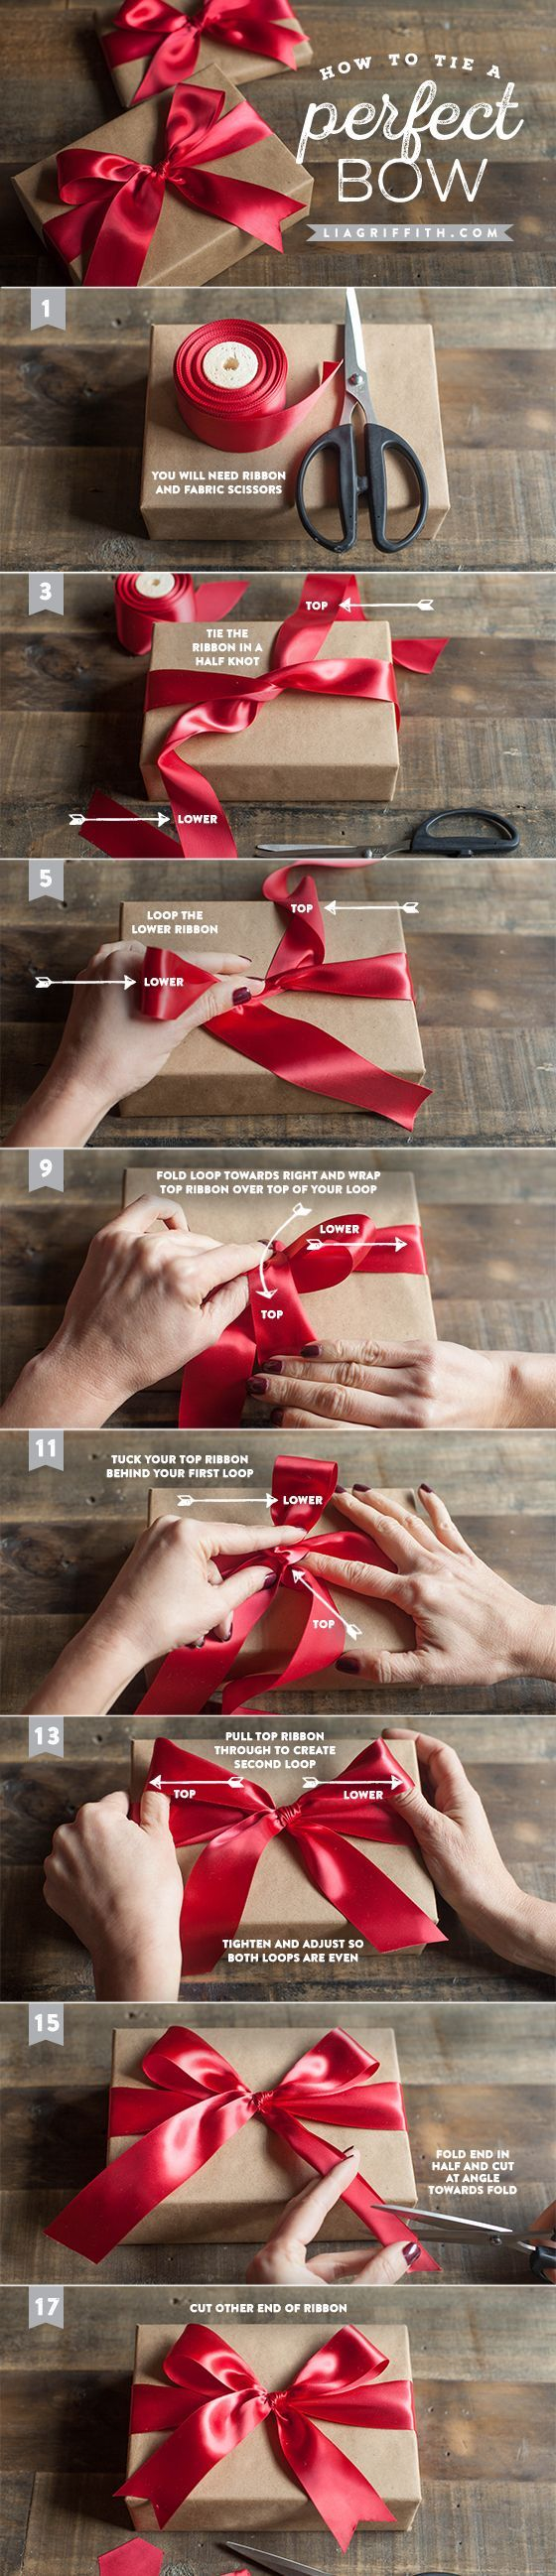 Bow tying for a beautiful present